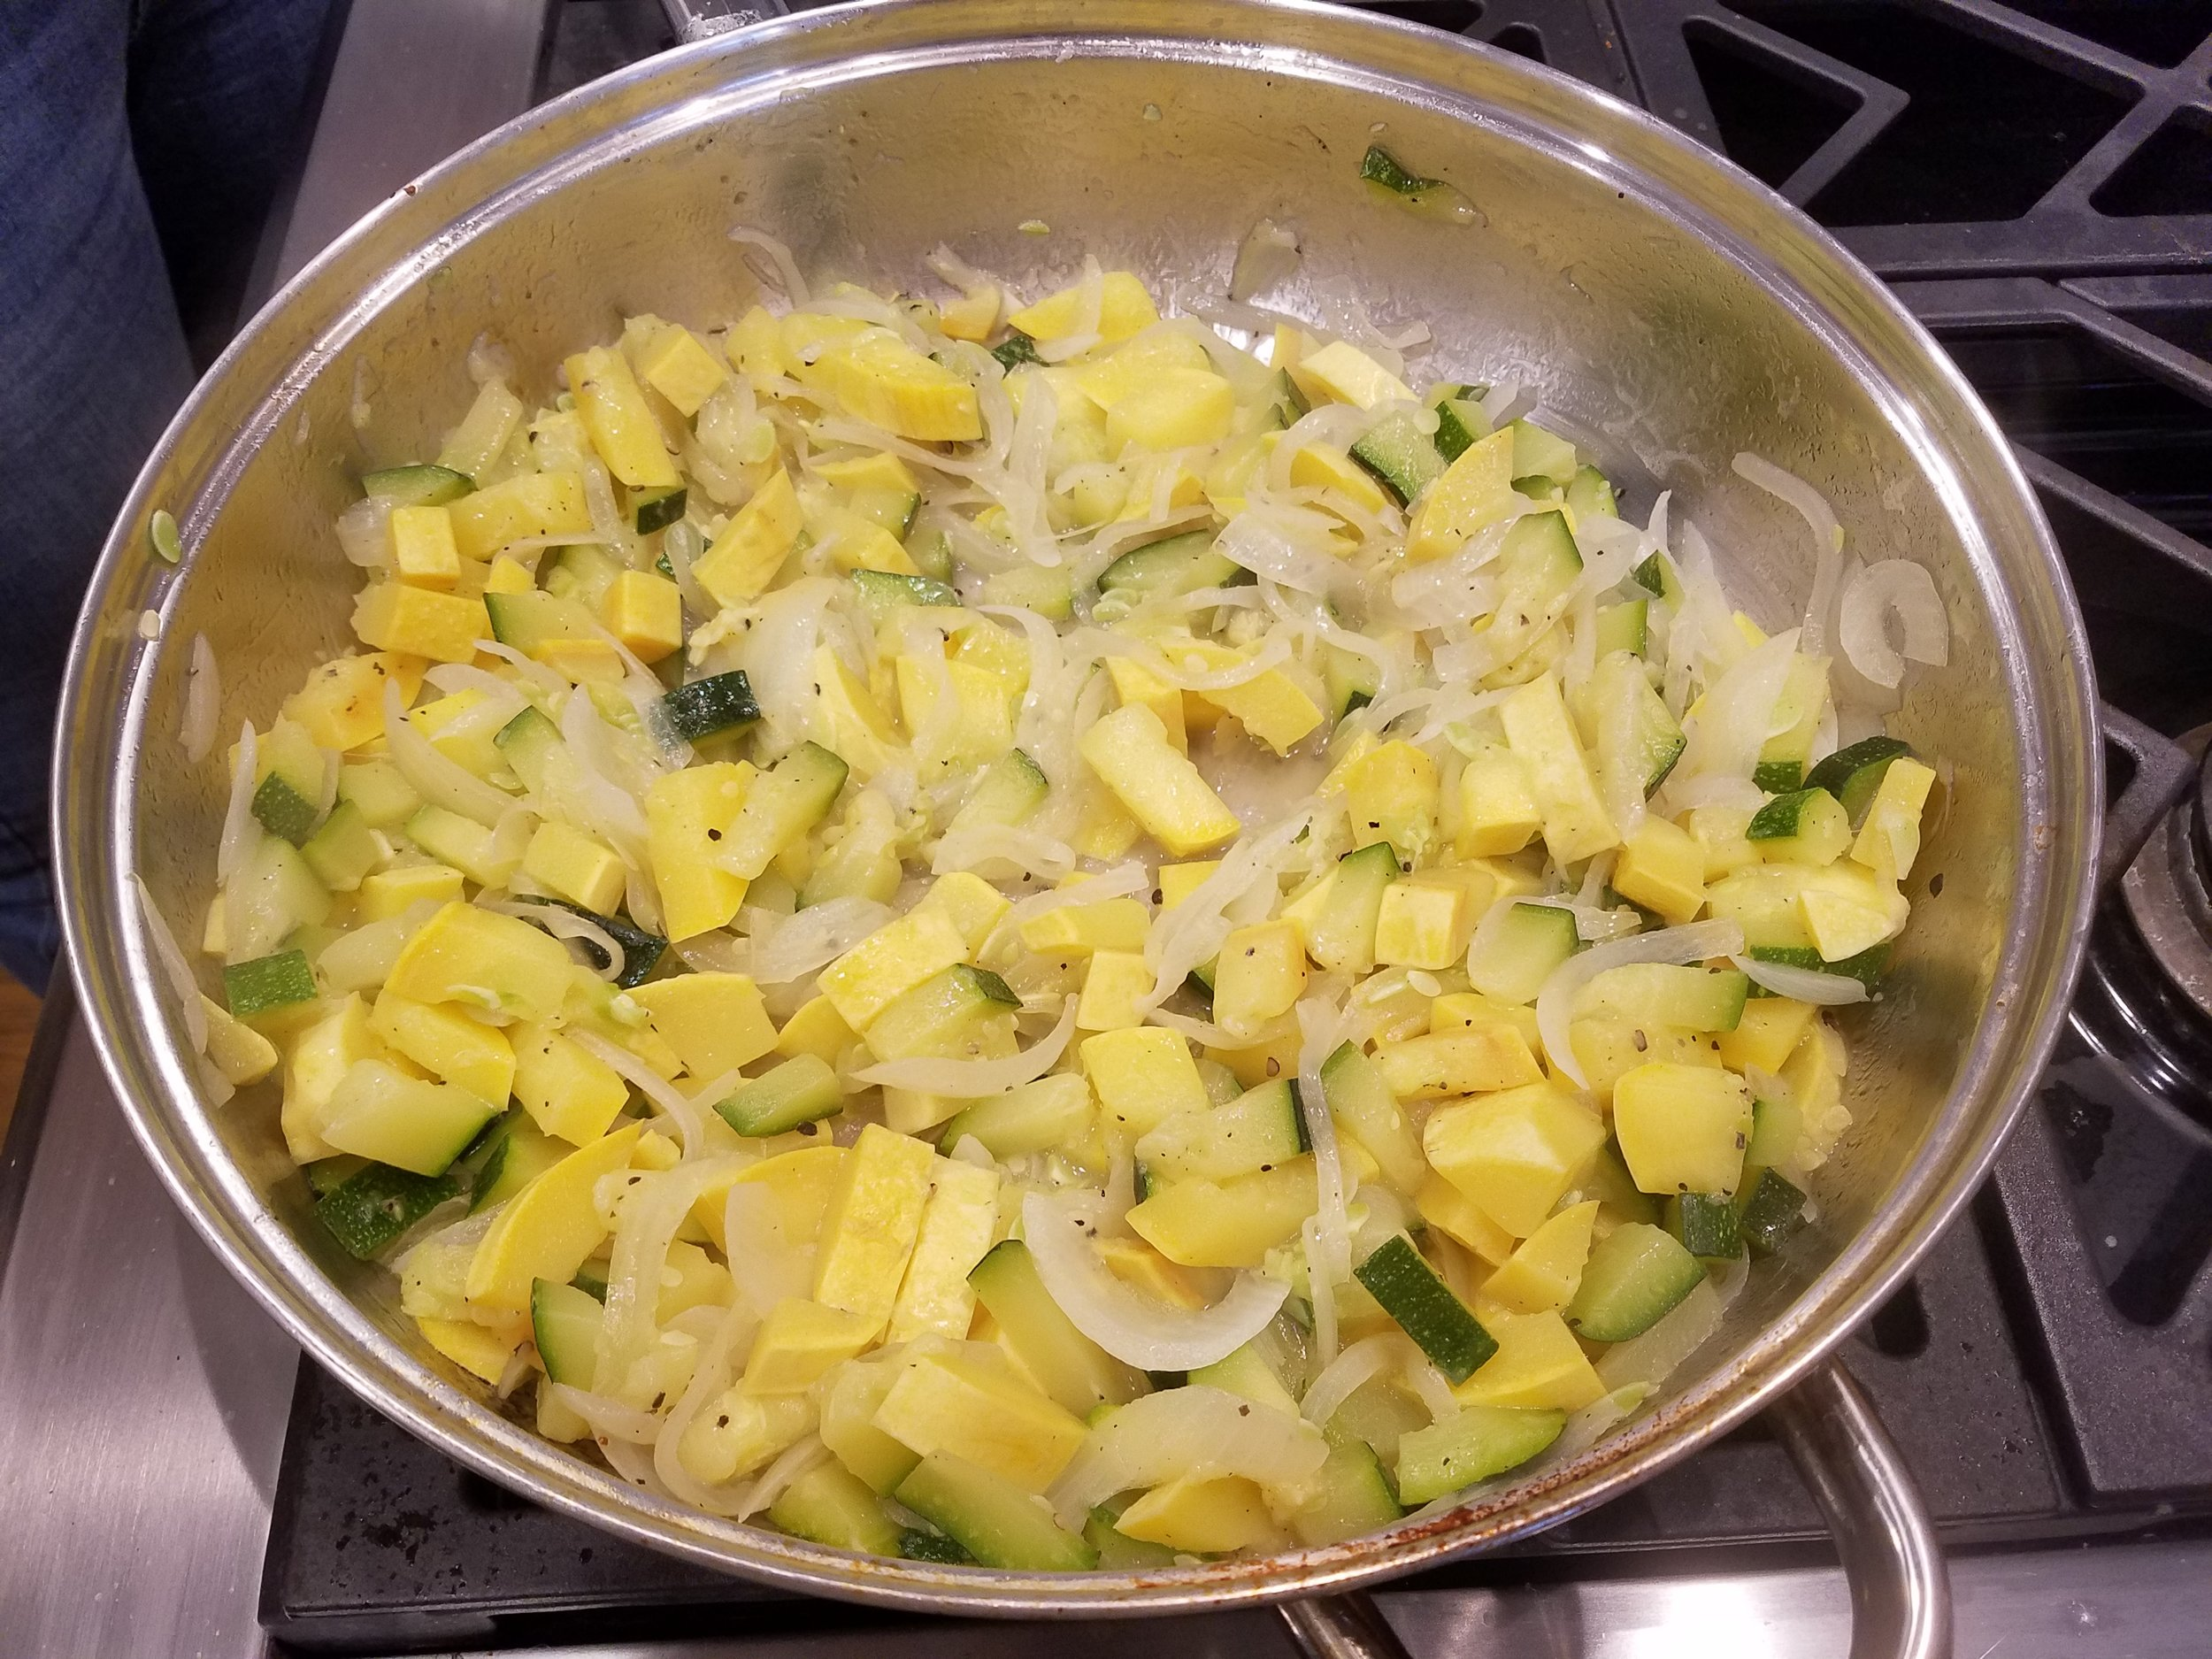 zucchini and onions